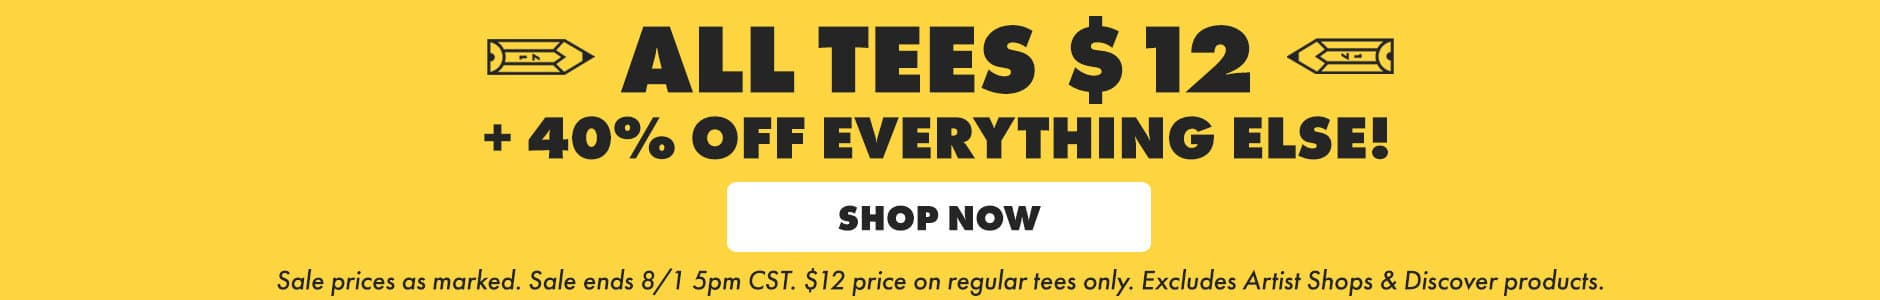 All tees $12 + 40% off everything else! Shop now. Sale prices as marked. Sale ends 8/1 at 5PM CST. Sale price on regular tees only. Excludes Artist Shops and Discover products.